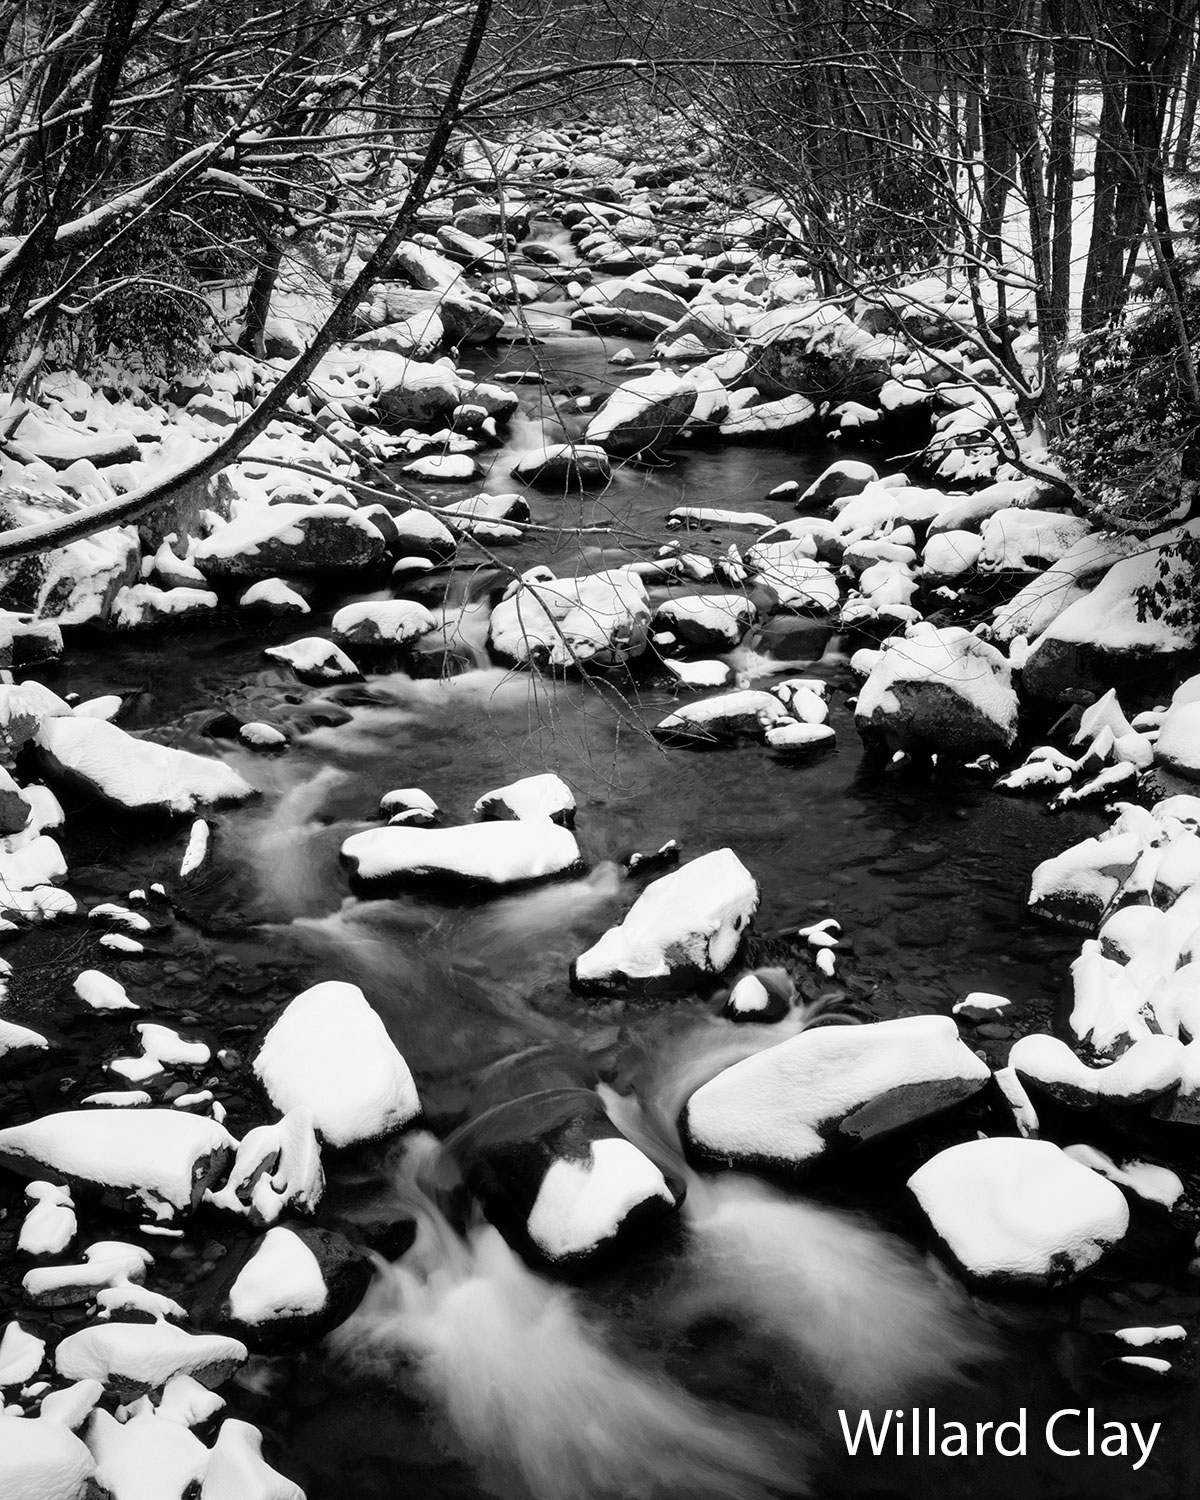 A black-and-white photo of a stream with snow-covered rocks by Willard Clay